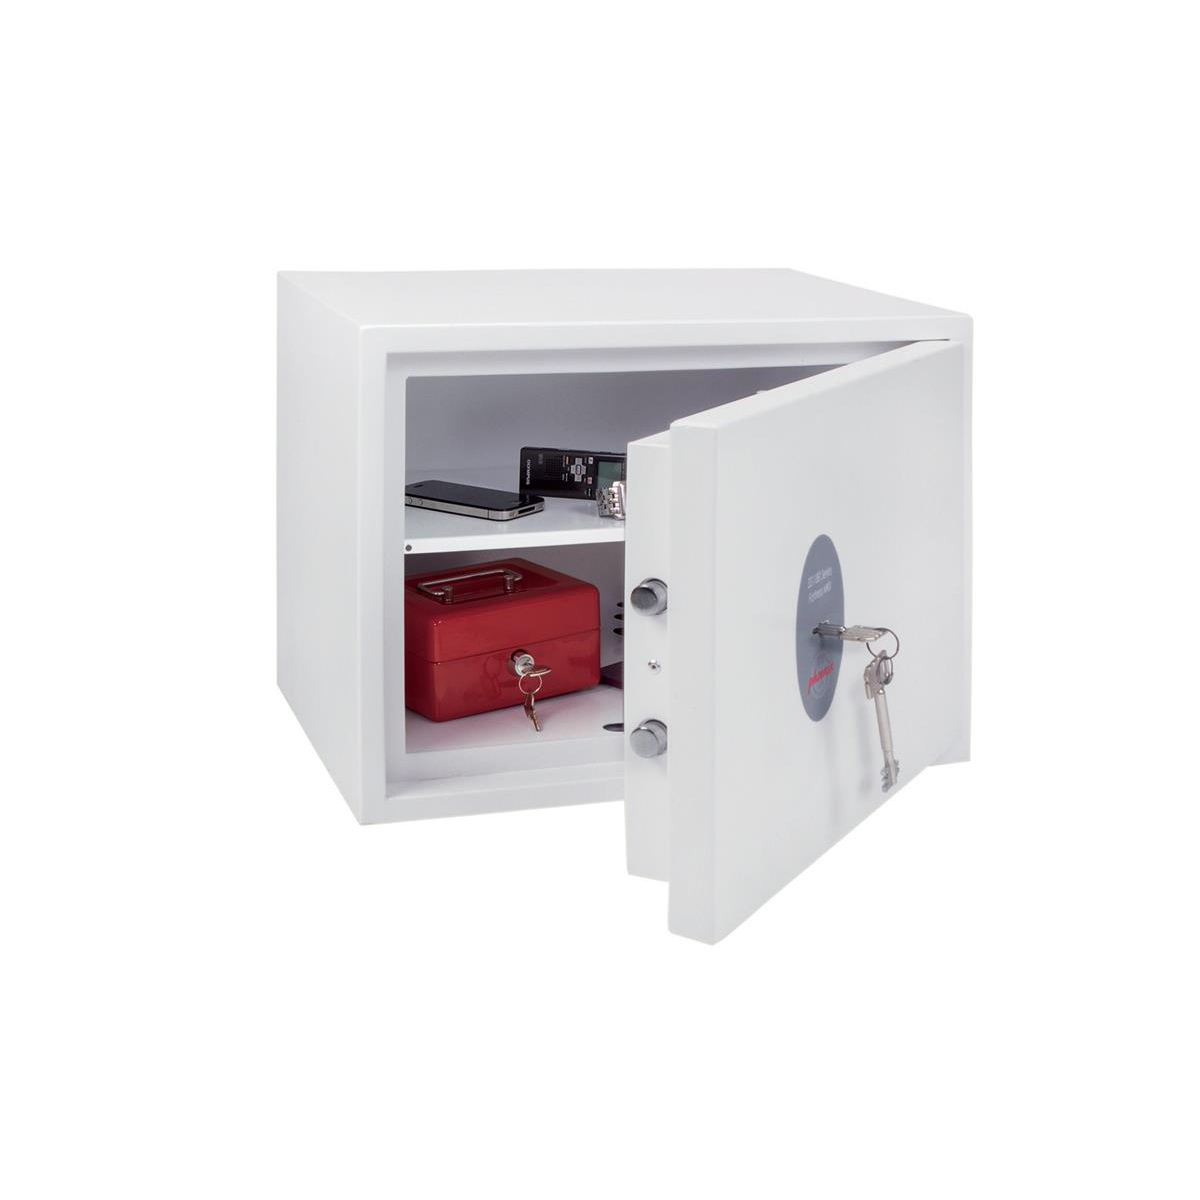 Safes Phoenix Fortress High Security Safe Key Lock 24L Capacity 25kg W450xD350xH350mm Ref SS1182K